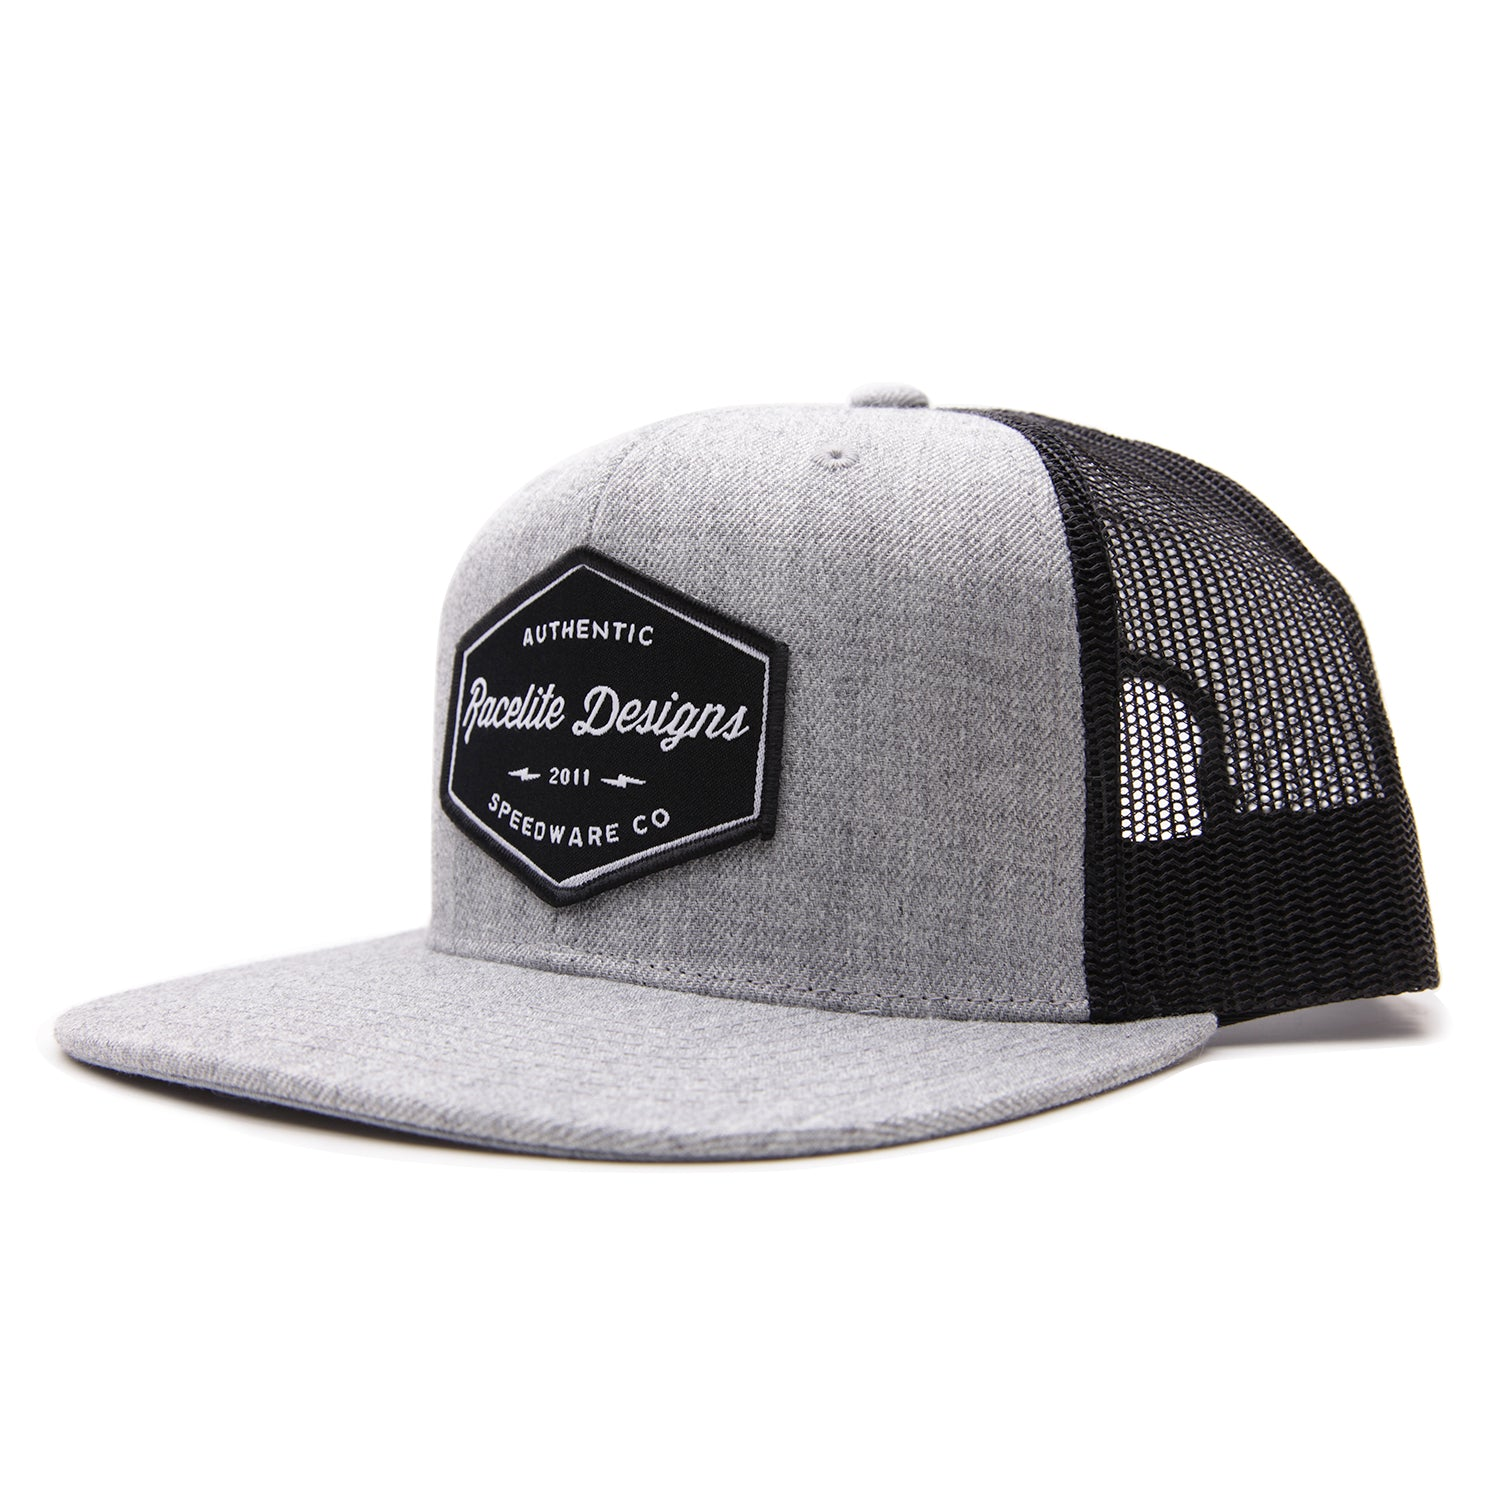 Racelite Designs Authentic Speedware Flat Brim Side View